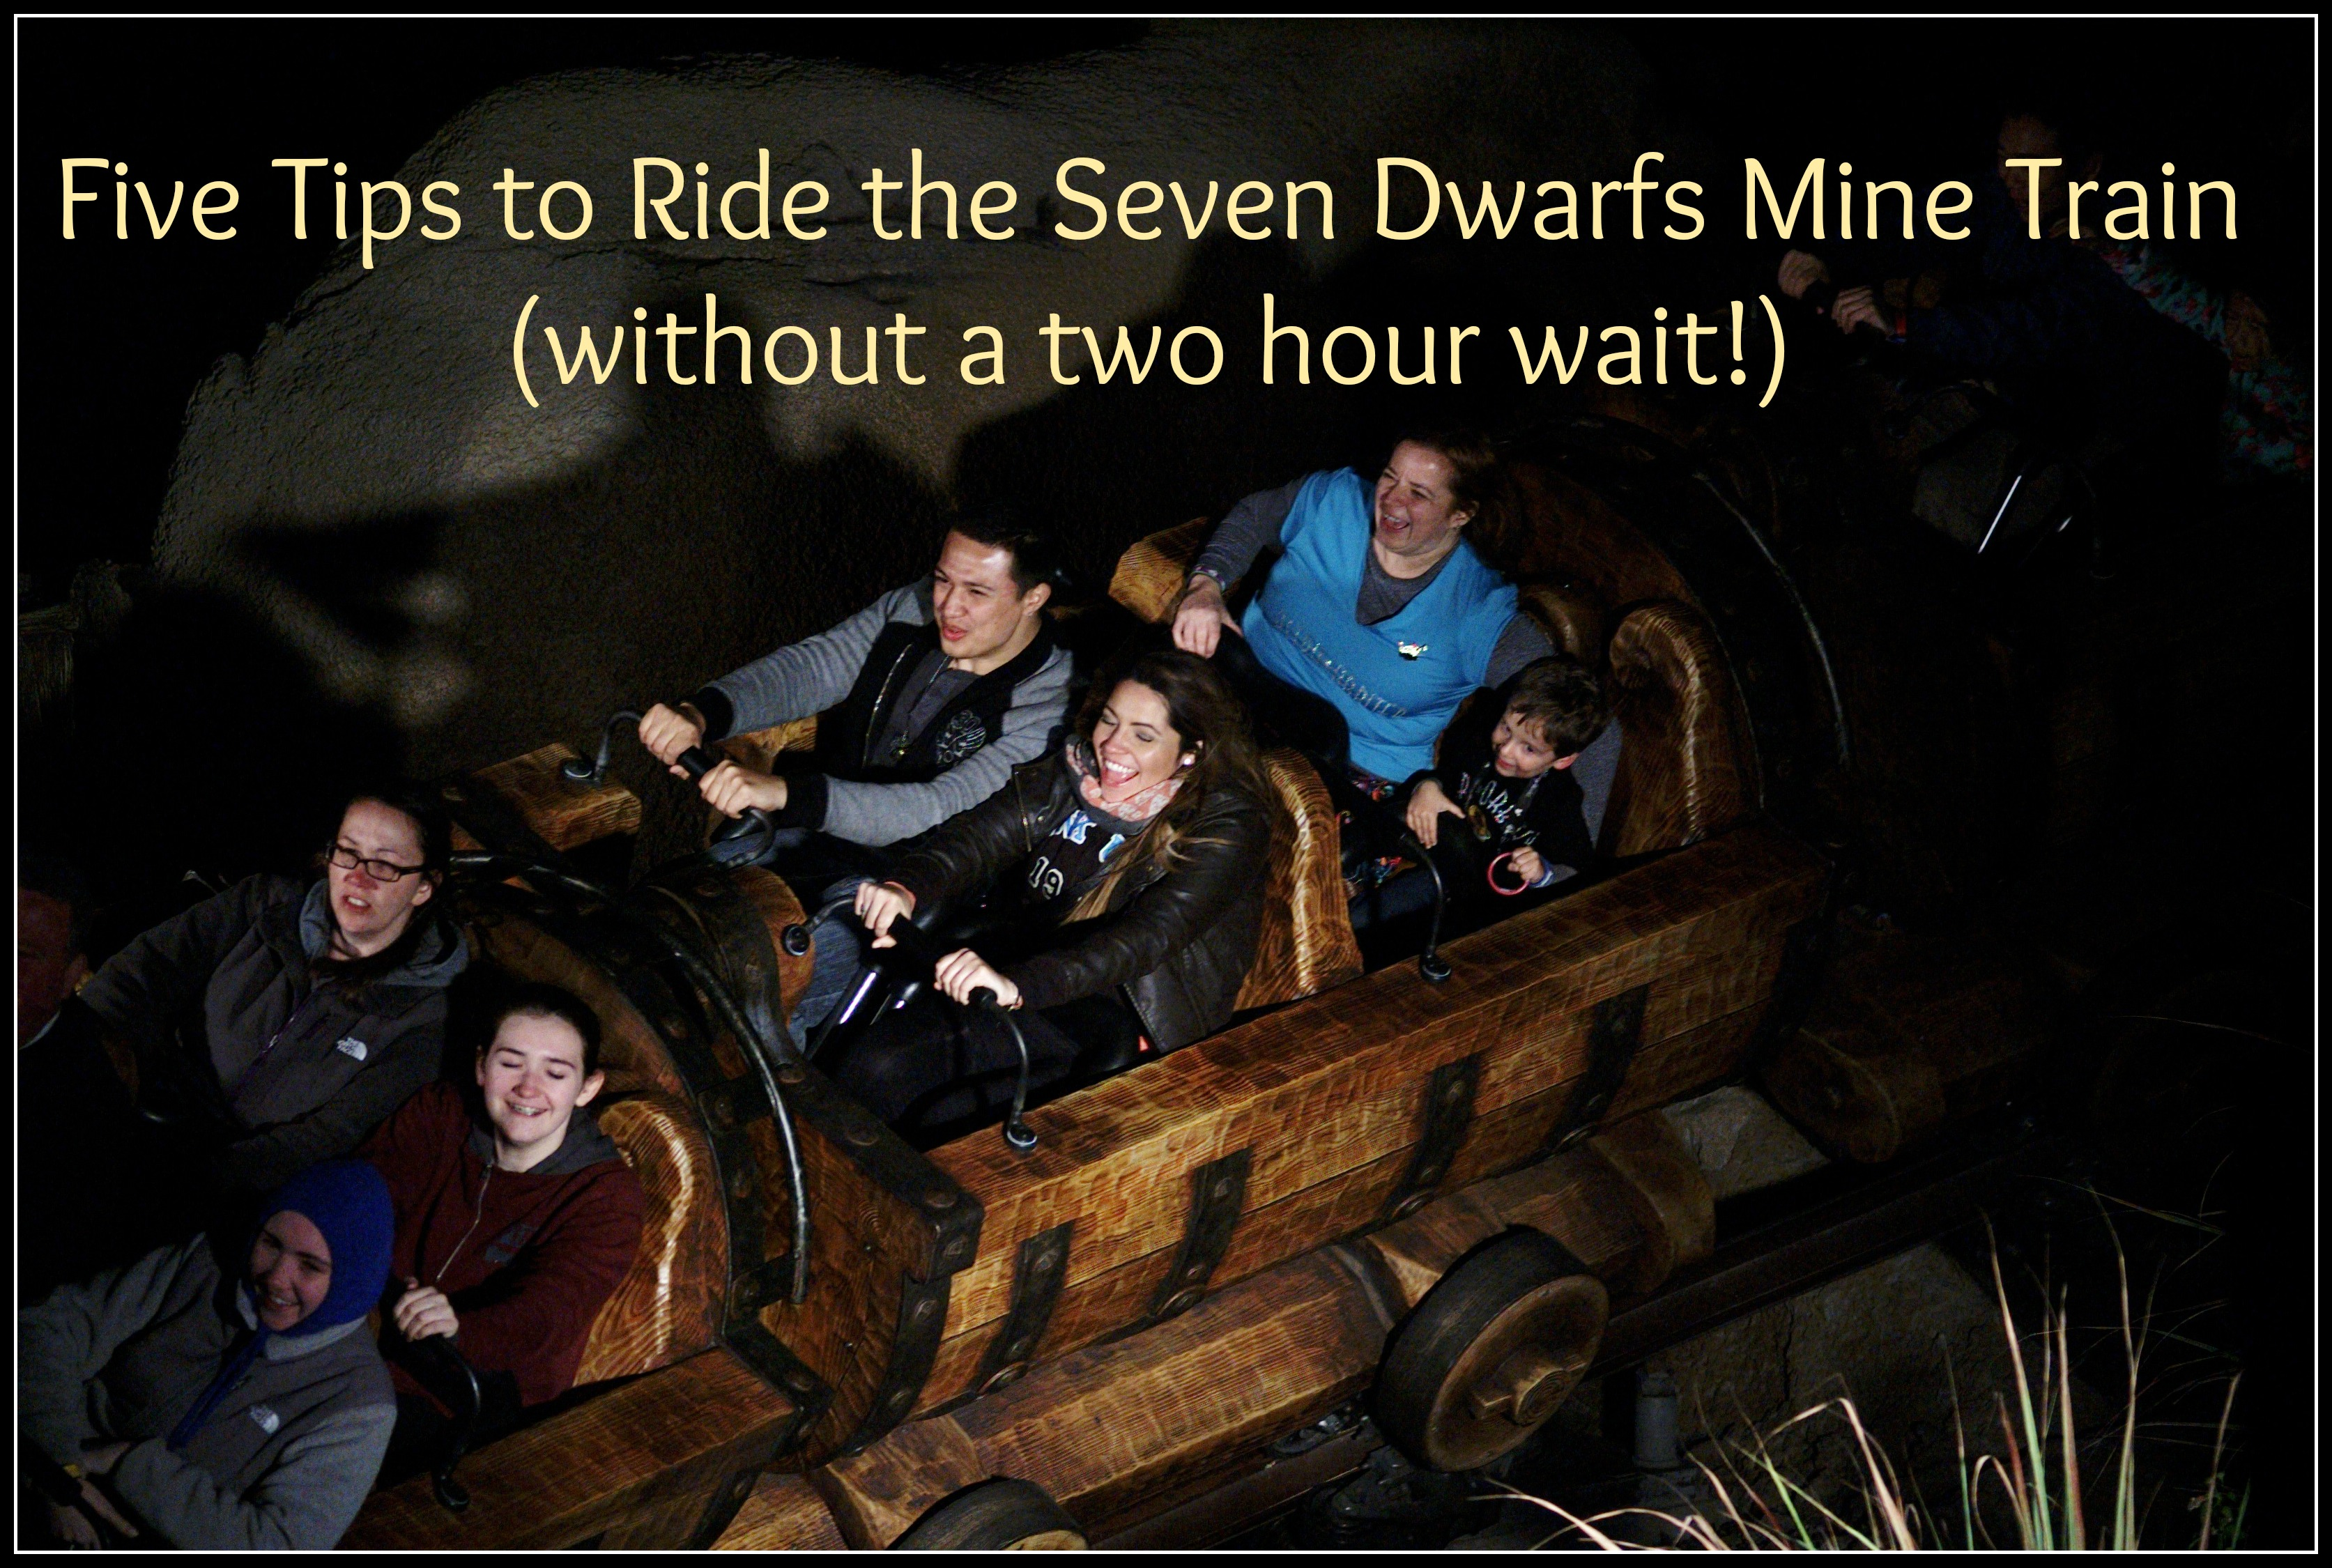 How to Ride The Seven Dwarfs Mine Train (without a two hour